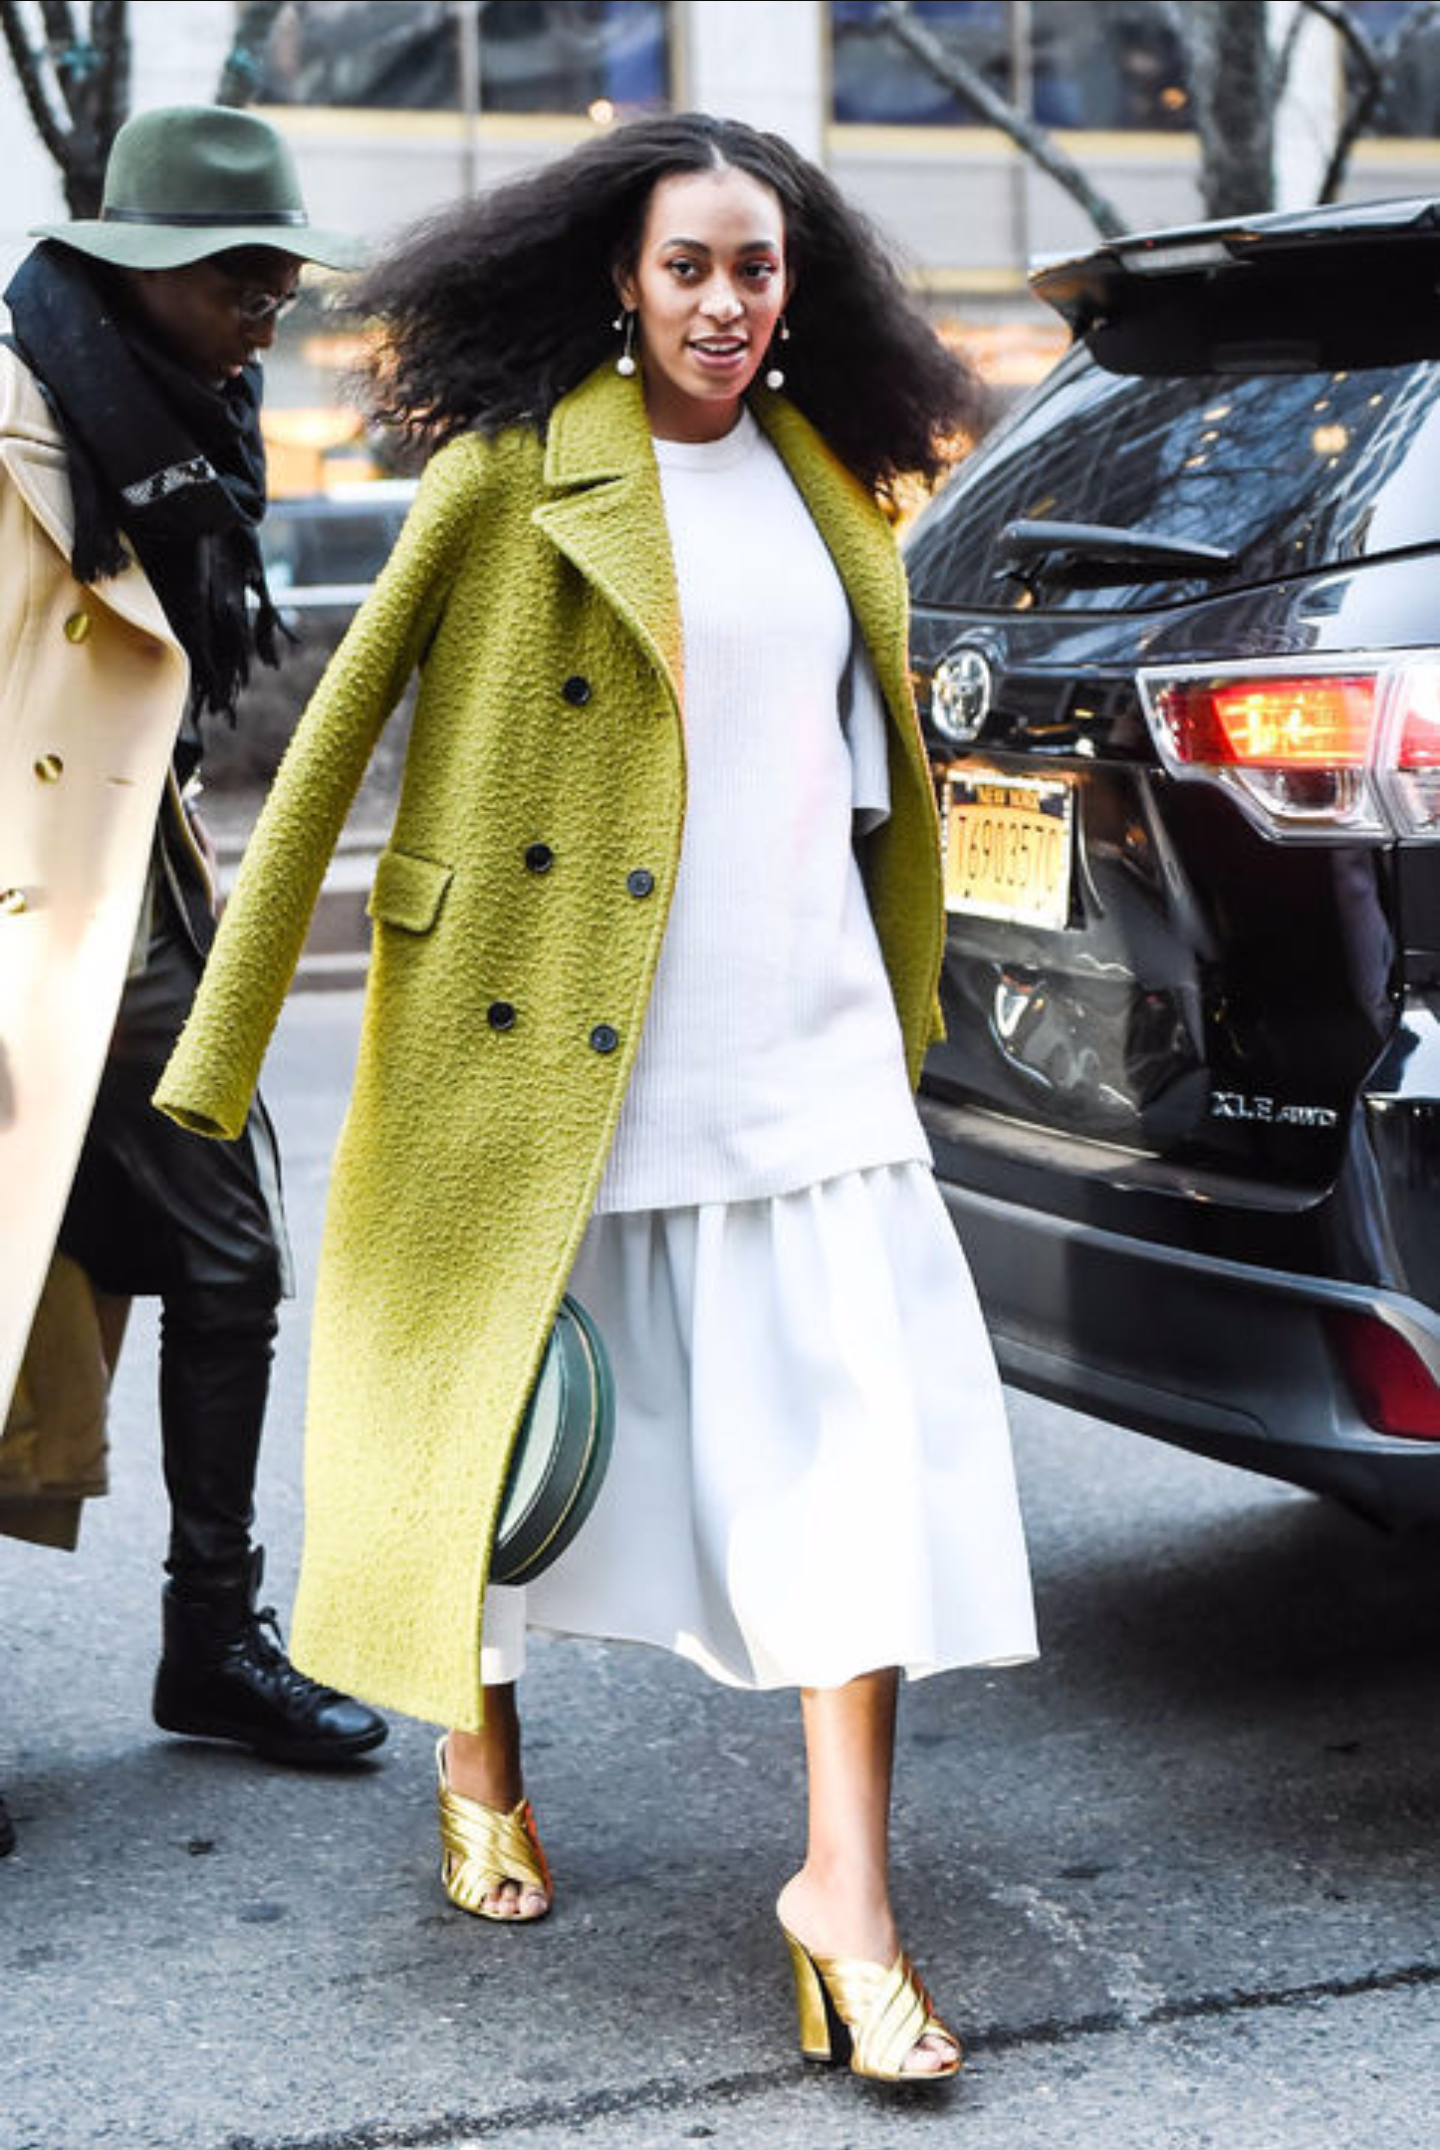 SOLANGE KNOWLES IN RYAN ROCHE